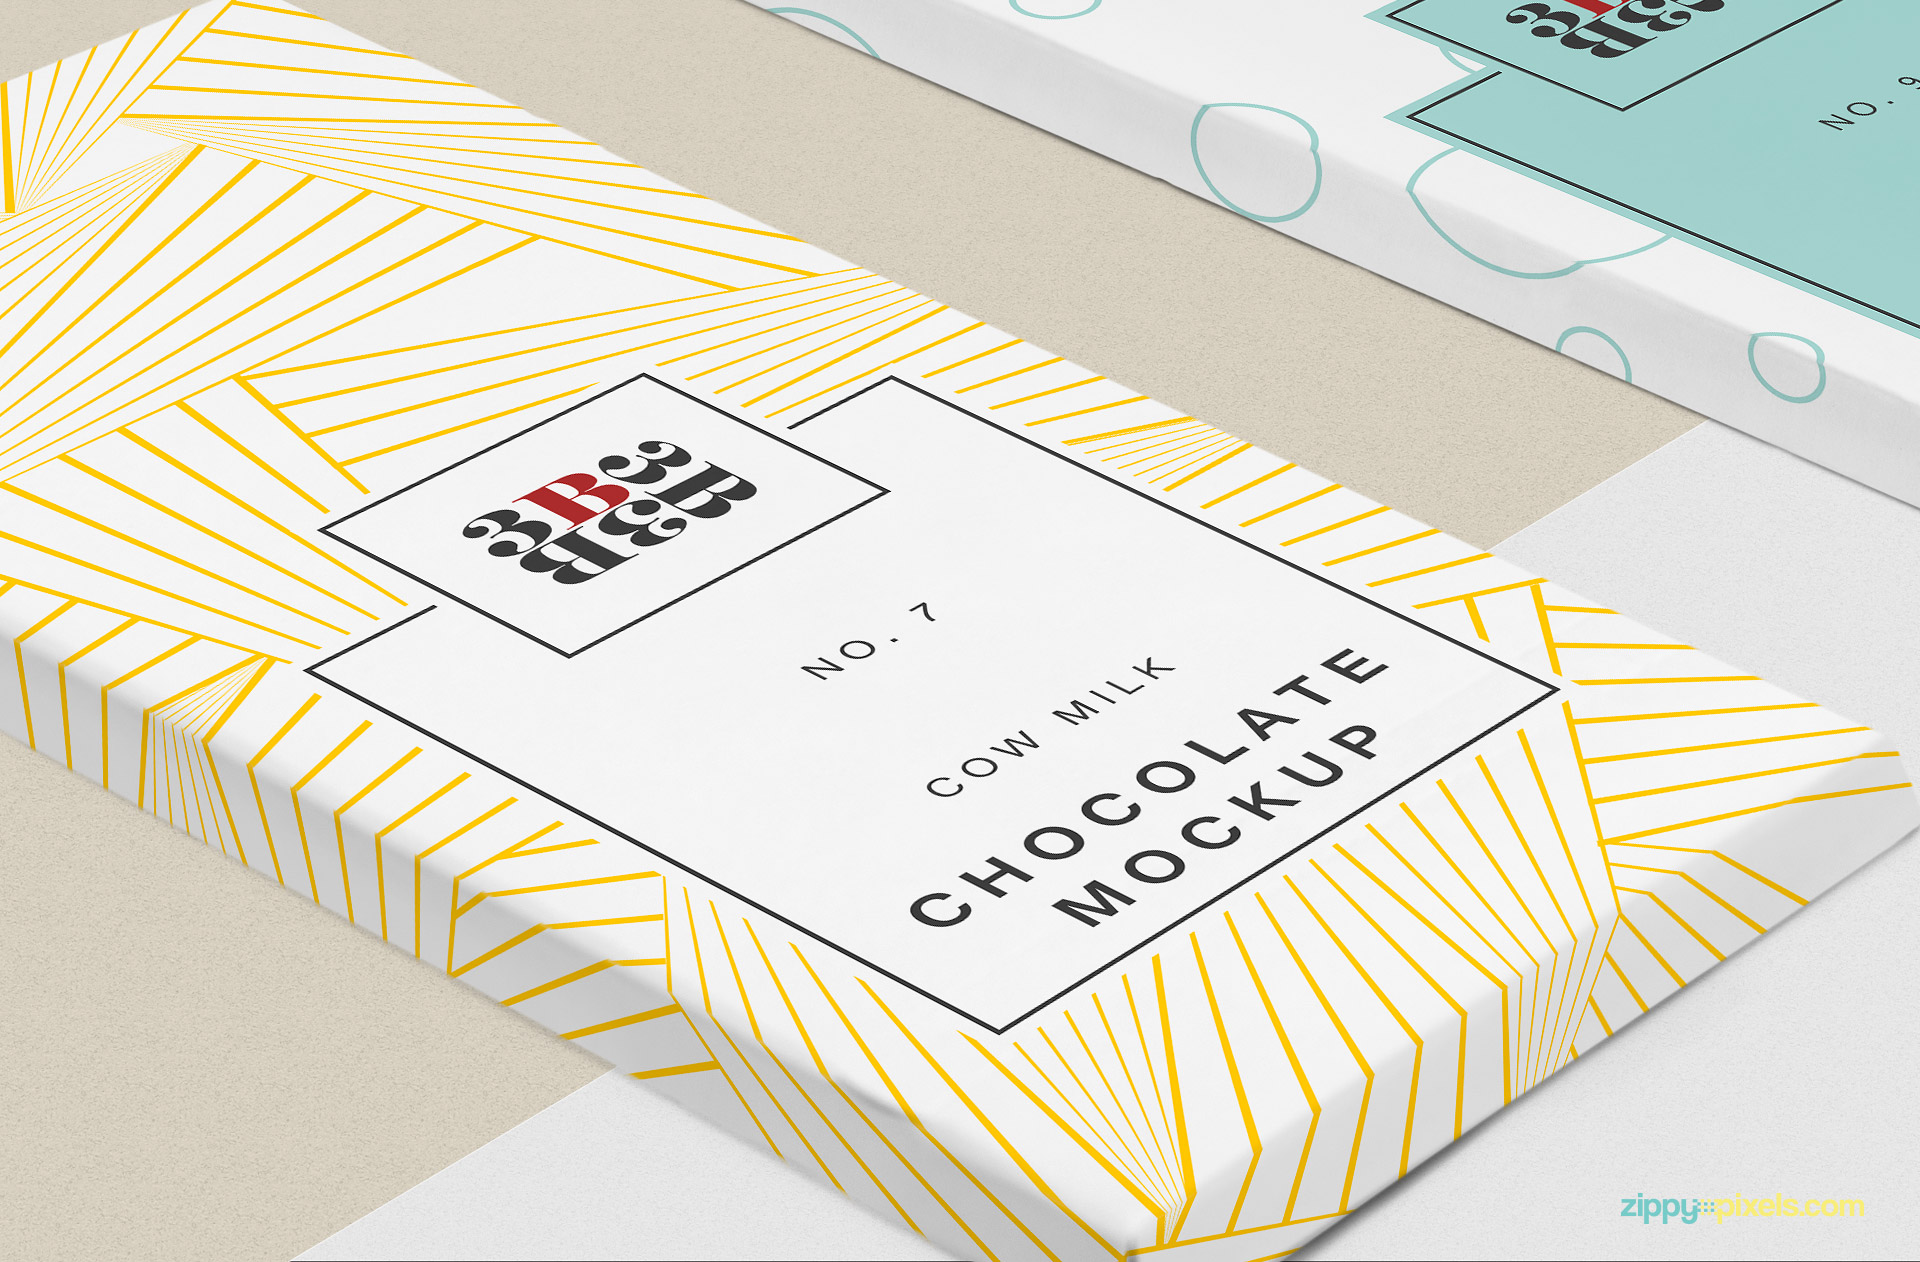 Zoom in view of chocolate packaging mockup.